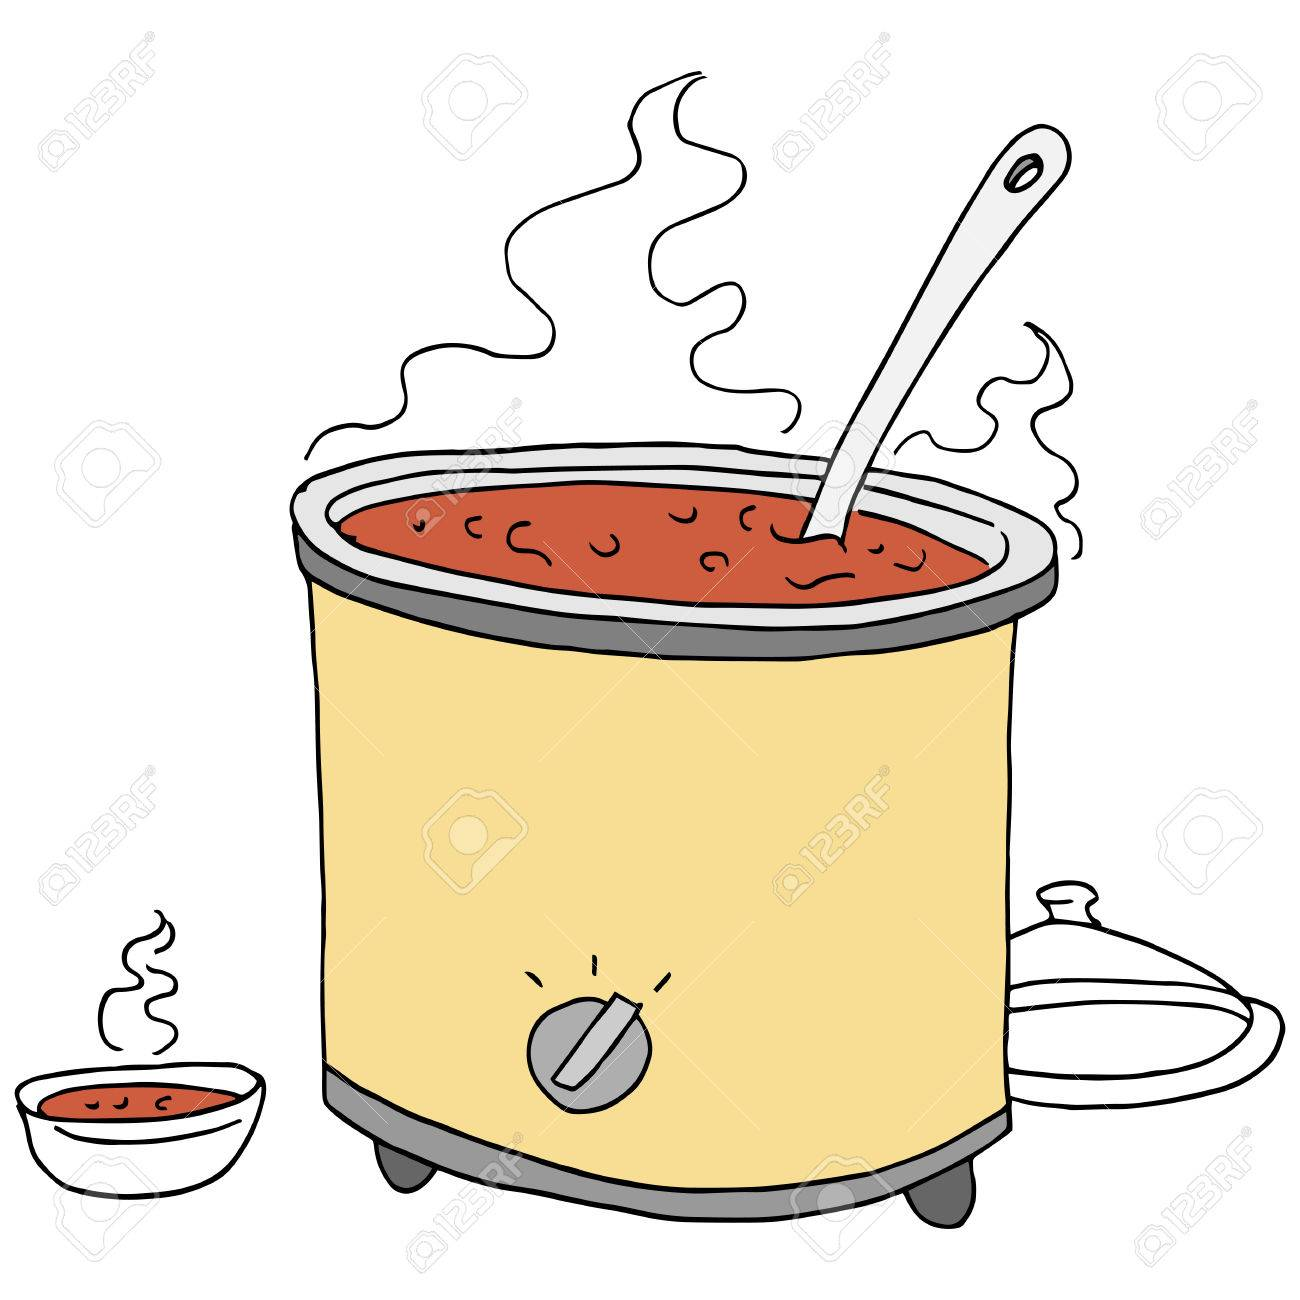 An Image Of A Retro Chili Crockpot Drawing Royalty Free Cliparts Vectors And Stock Illustration Image 73432622